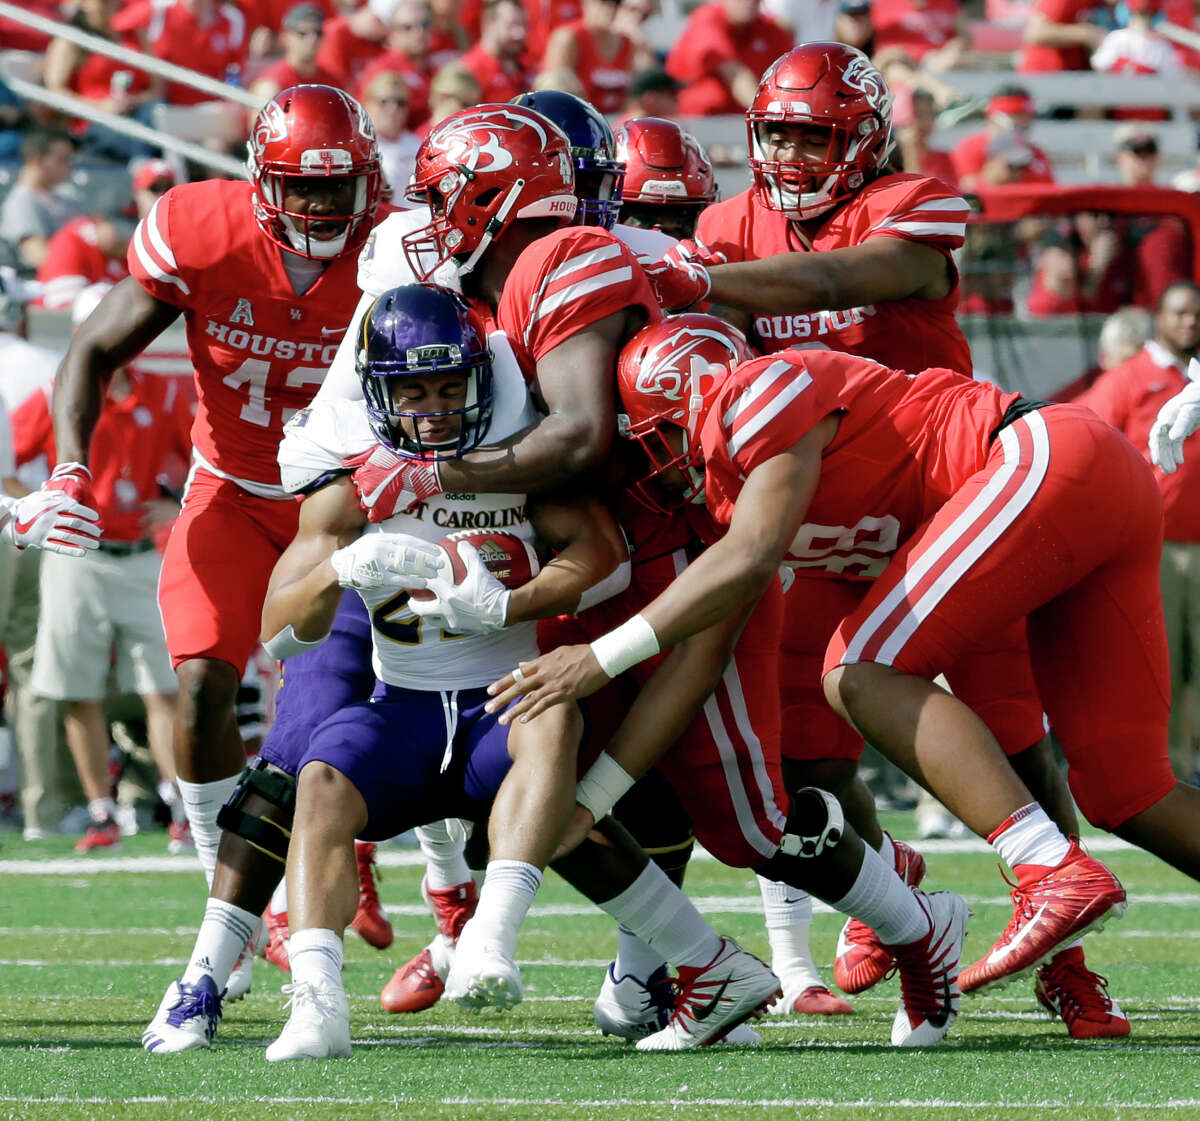 East Carolina running back Devin Anderson (25) is surrounded on a tackle by Houston's Leroy Godfrey (43), Ed Oliver (10), Emeke Egbule (8) and defensive lineman Payton Turner (98) during the first half of an NCAA college football game Saturday, Nov. 4, 2017, in Houston. (Michael Wyke/Houston Chronicle via AP)